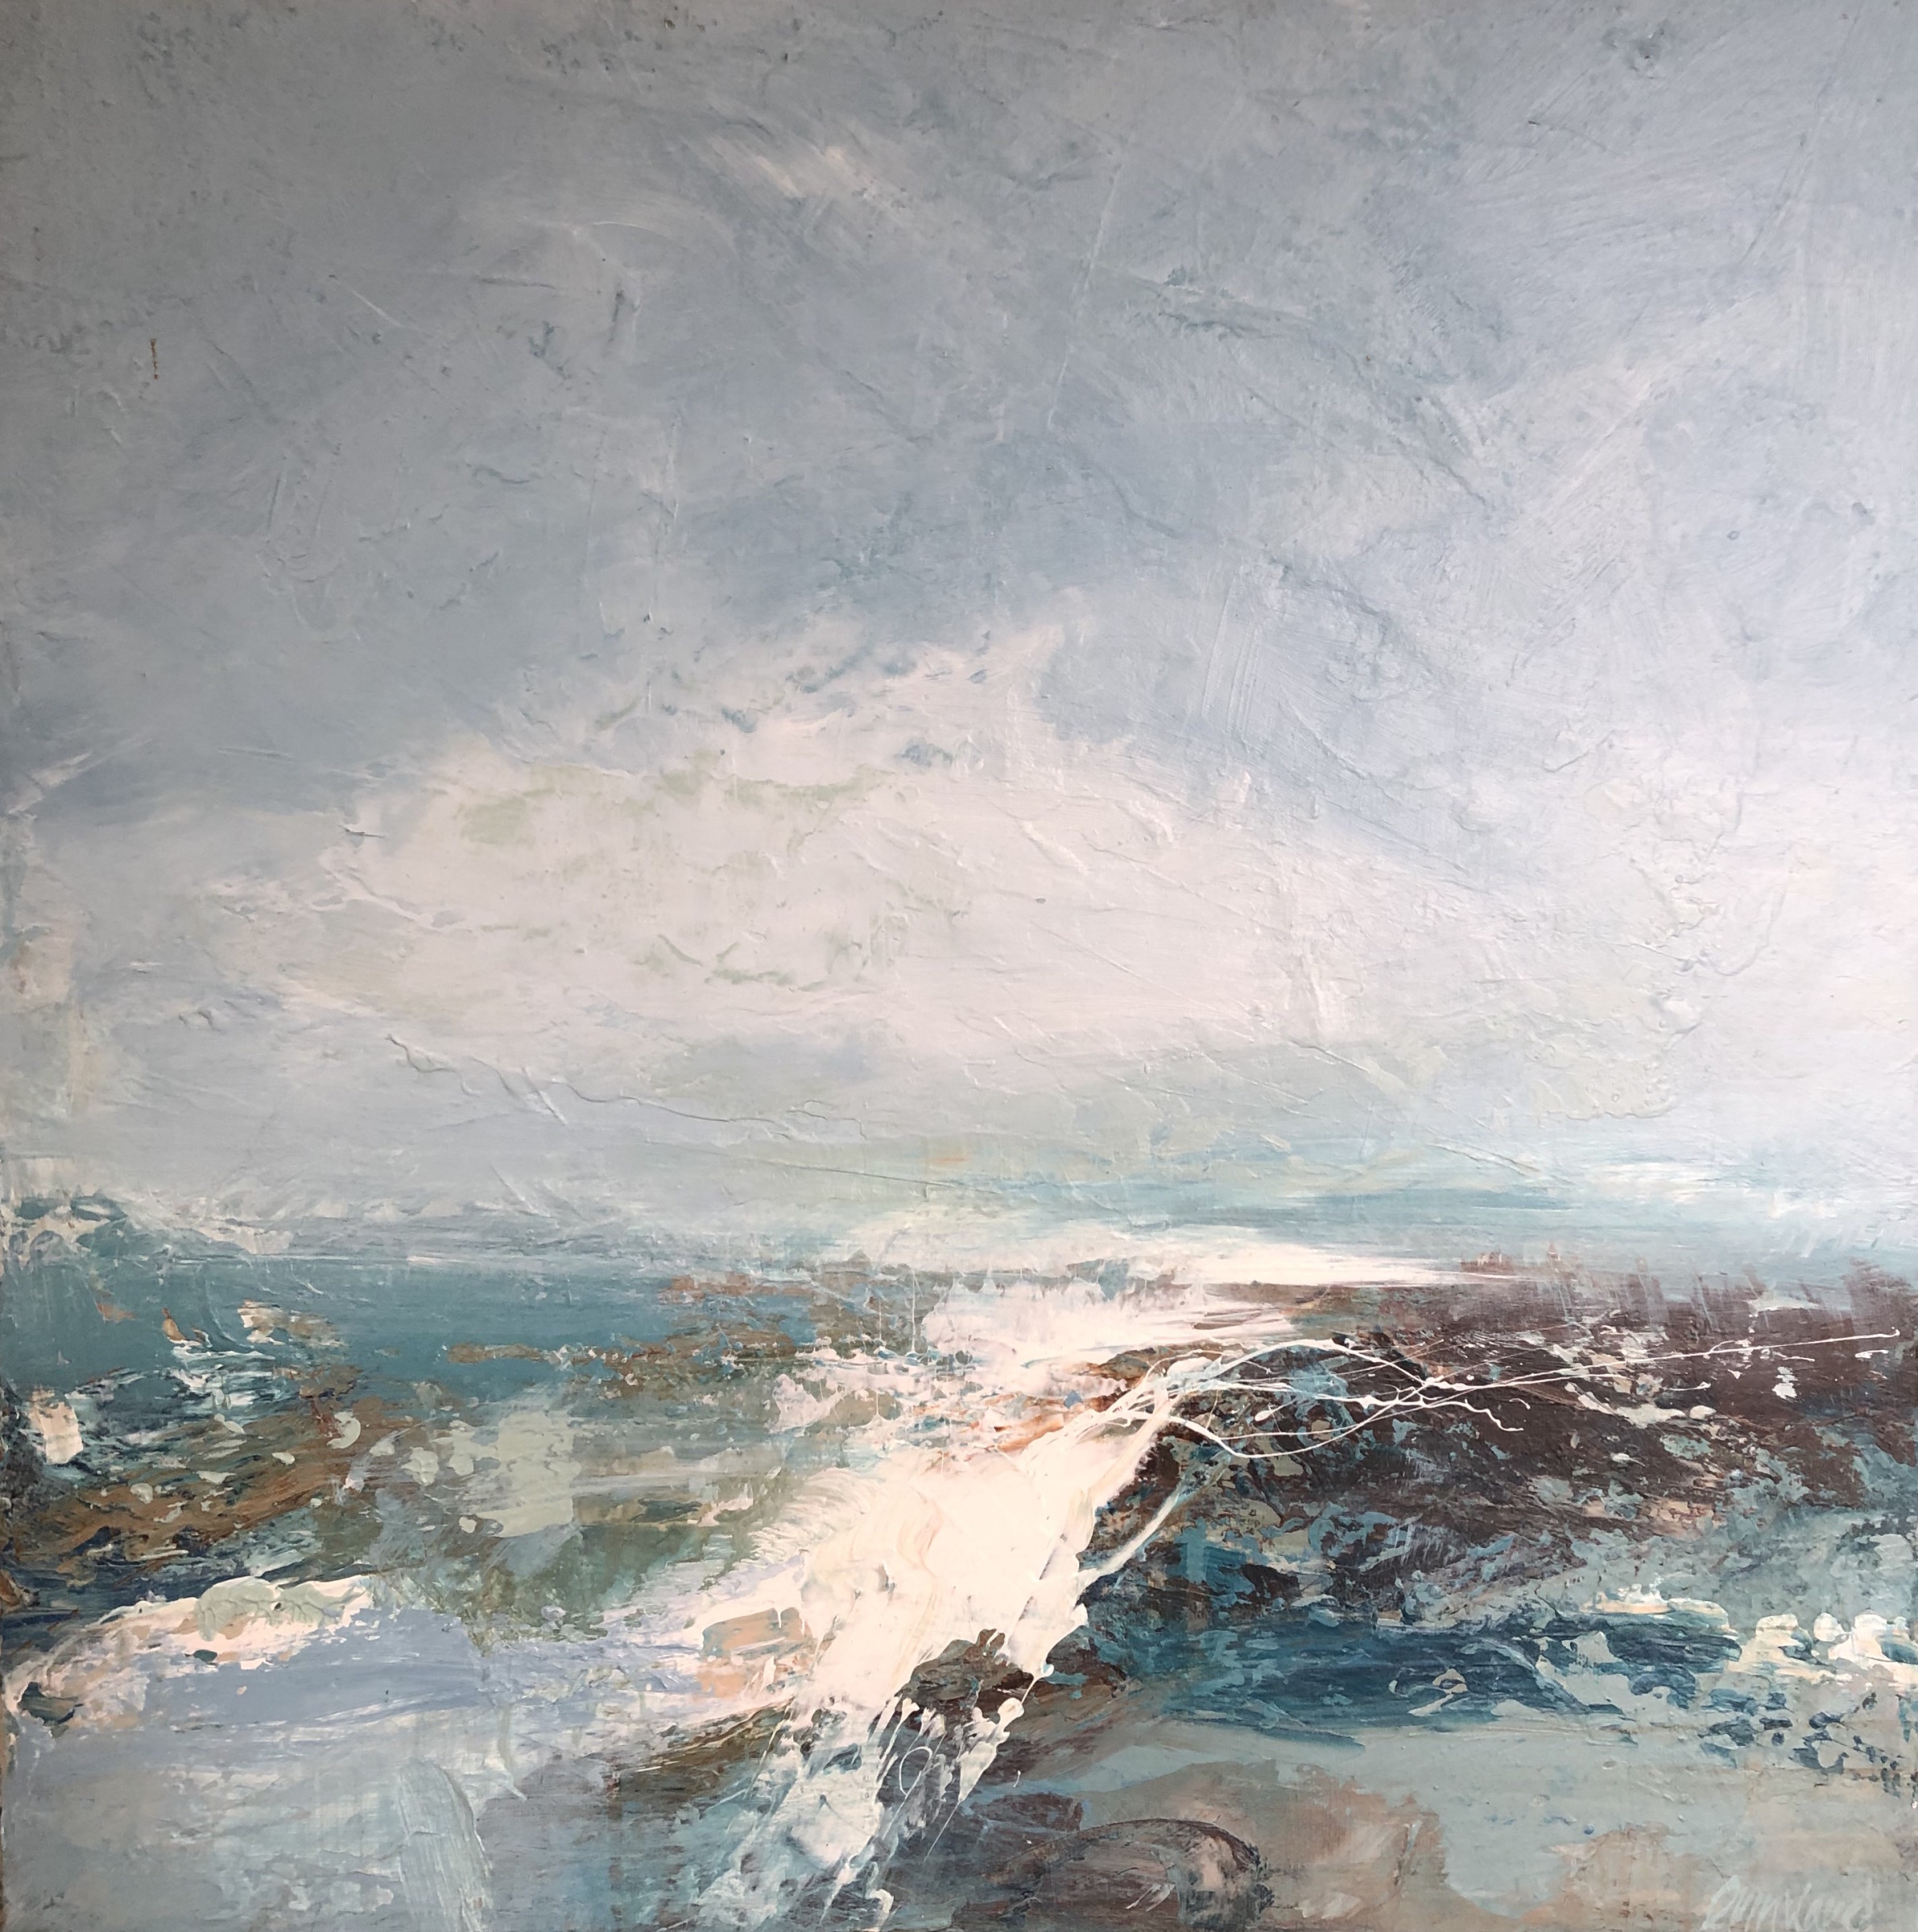 "<span class=""link fancybox-details-link""><a href=""/artists/41-erin-ward/works/6490-erin-ward-evening-sea-2019/"">View Detail Page</a></span><div class=""artist""><strong>Erin Ward</strong></div> <div class=""title""><em>Evening Sea</em>, 2019</div> <div class=""signed_and_dated"">Signed, titled and dated</div> <div class=""medium"">Acrylic on canvas</div> <div class=""dimensions"">20 x 20 inches</div><div class=""copyright_line"">Copyright The Artist</div>"